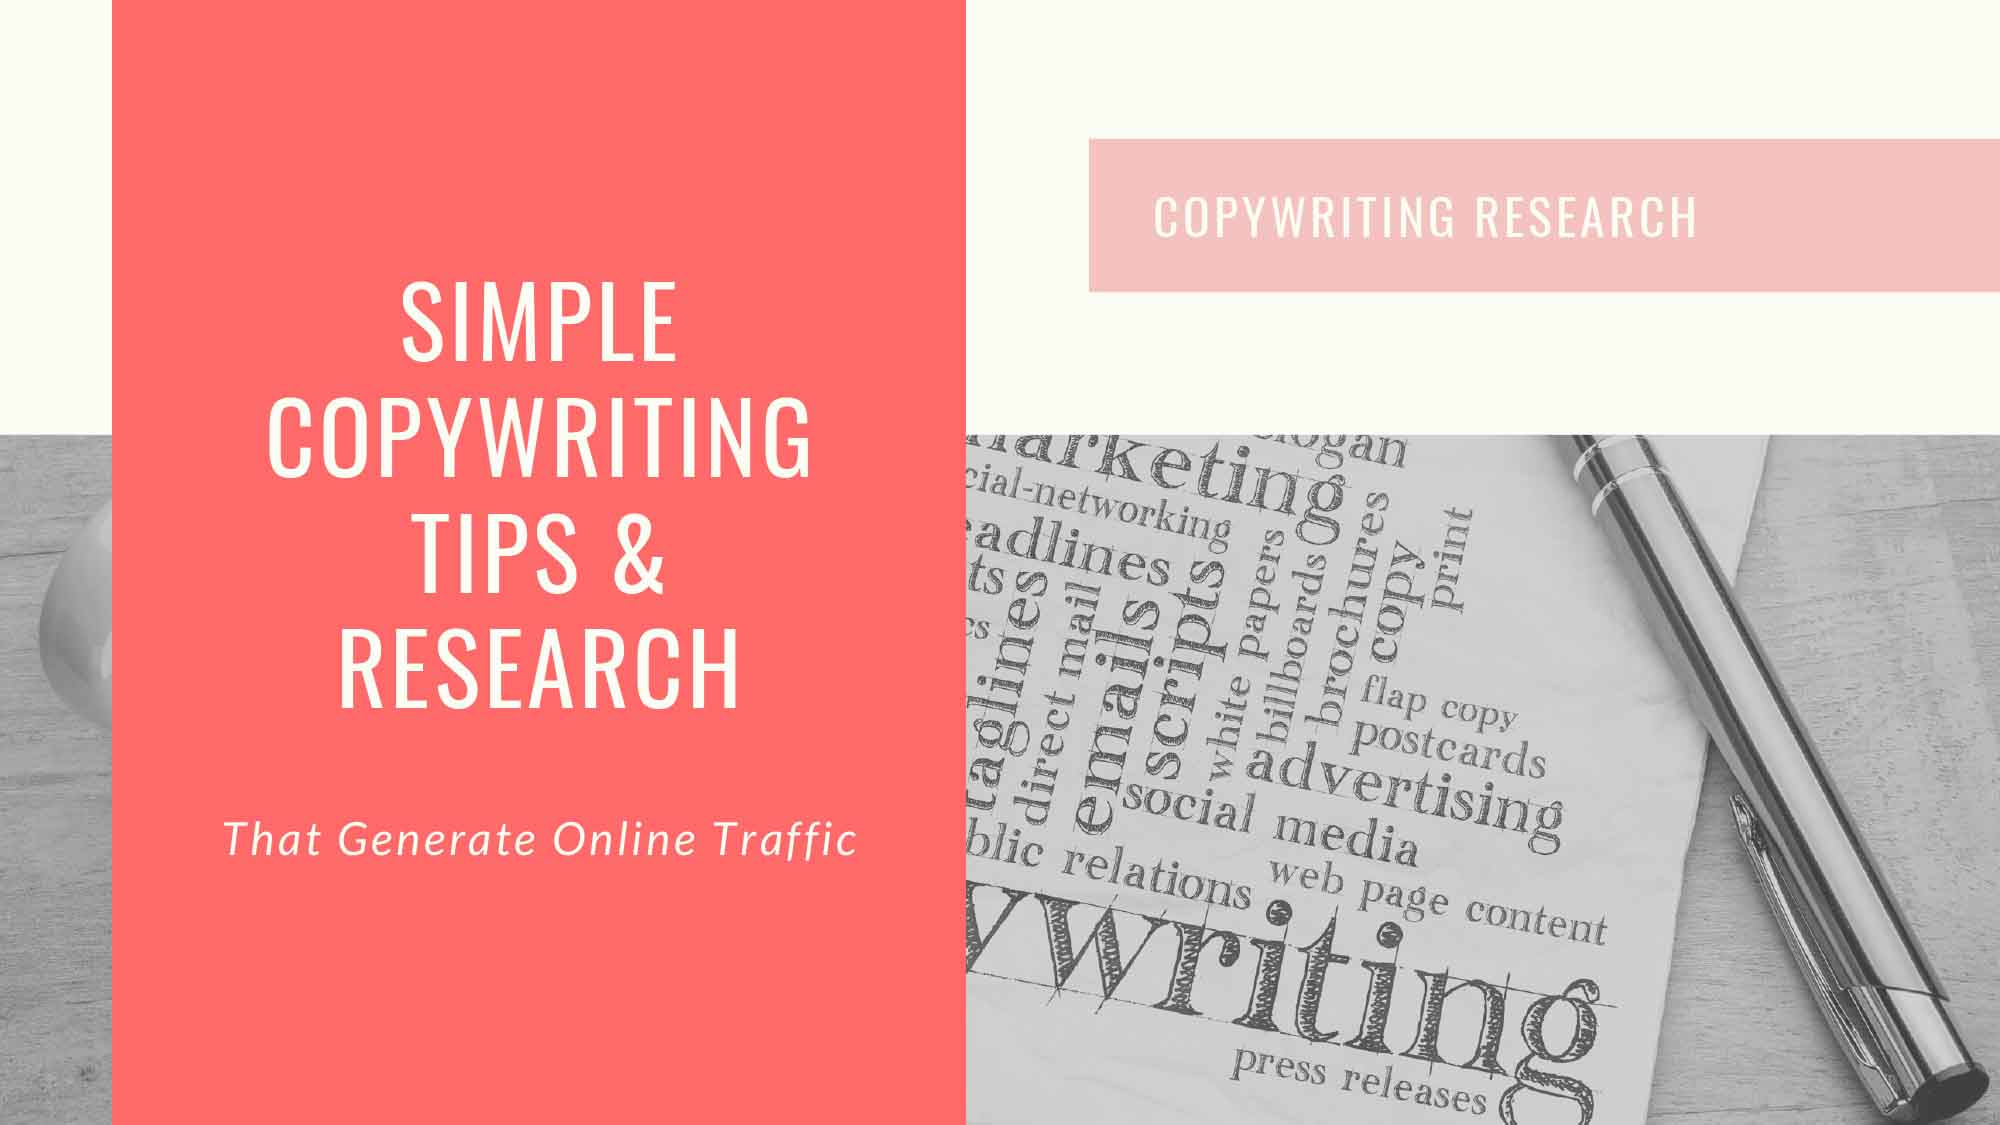 Simple Copywriting Tips & Research That Generate Online Traffic